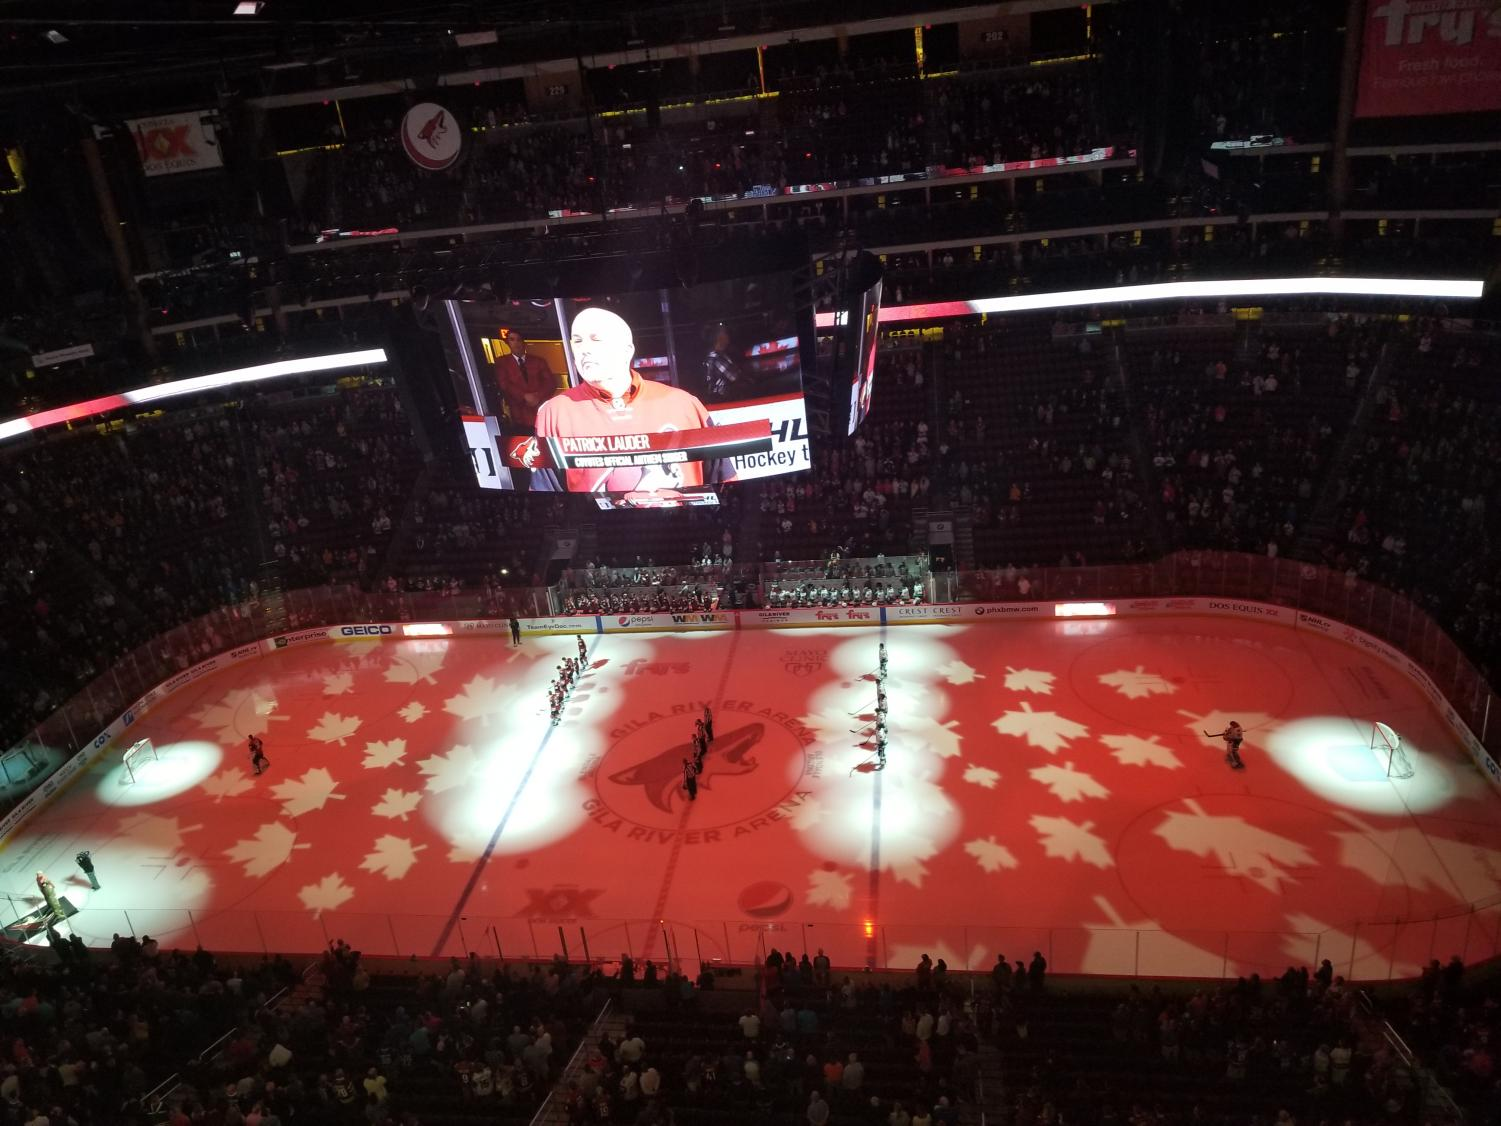 The Coyotes and Canucks wait for the Canadian National Anthem to be sung by official anthem singer Patrick Lauder.